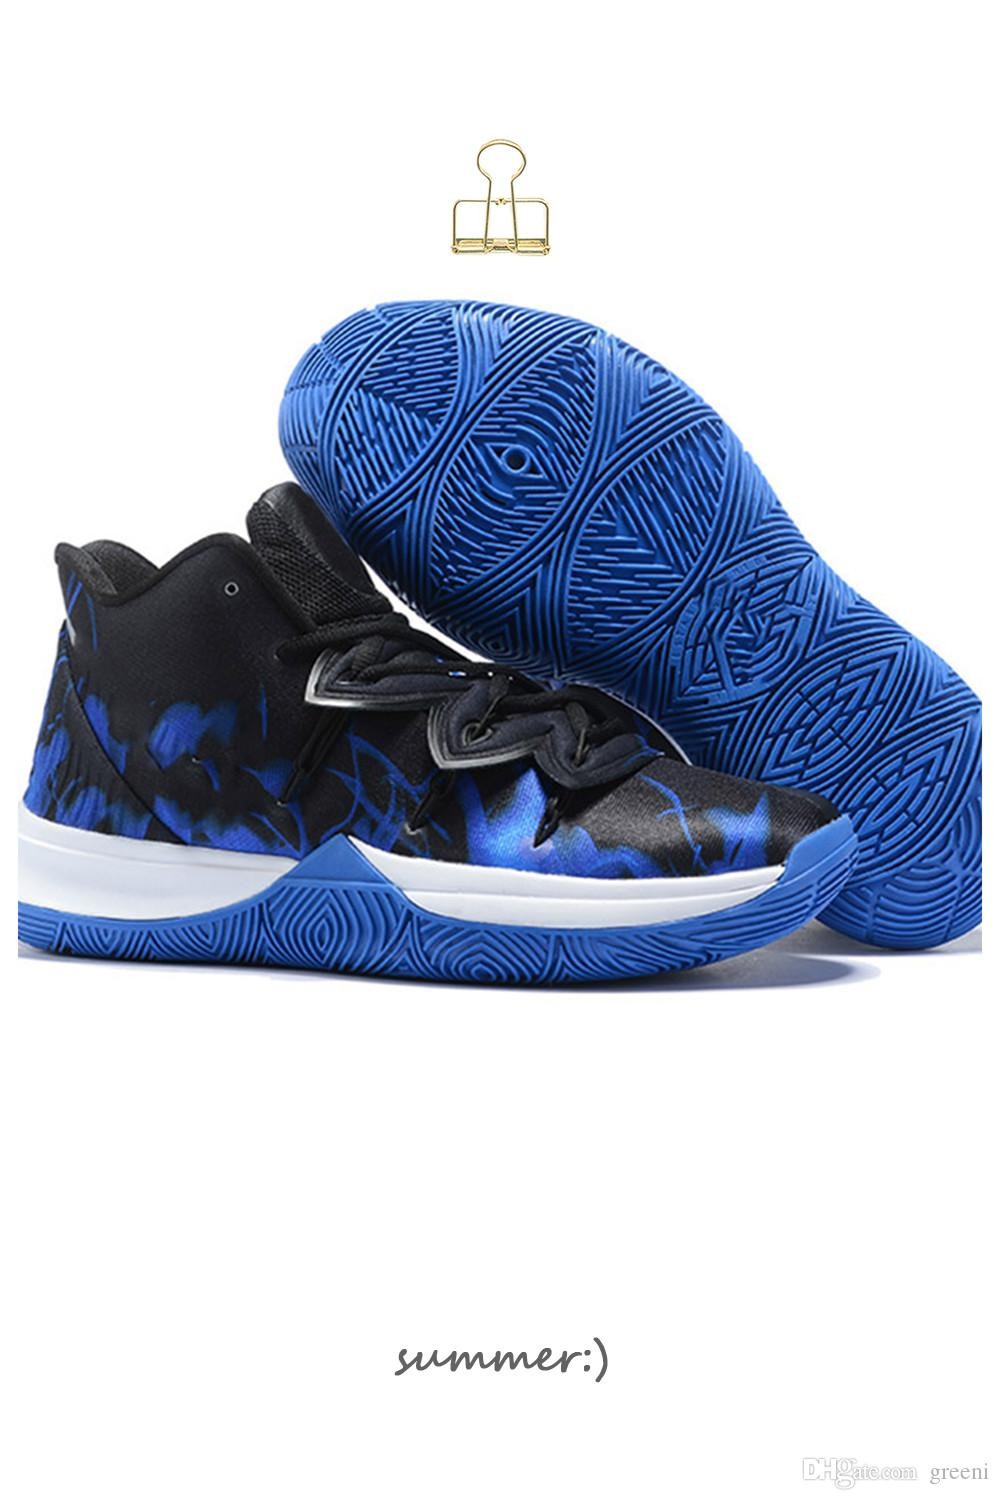 7a3785166746 2019 Hot Sales Kyrie 5 Duke Shoes For Men Irving 5 Man Basketball Shoes CI0306  901 Game Royal Black Designer Sneakers With Box US7 US12 From Greeni